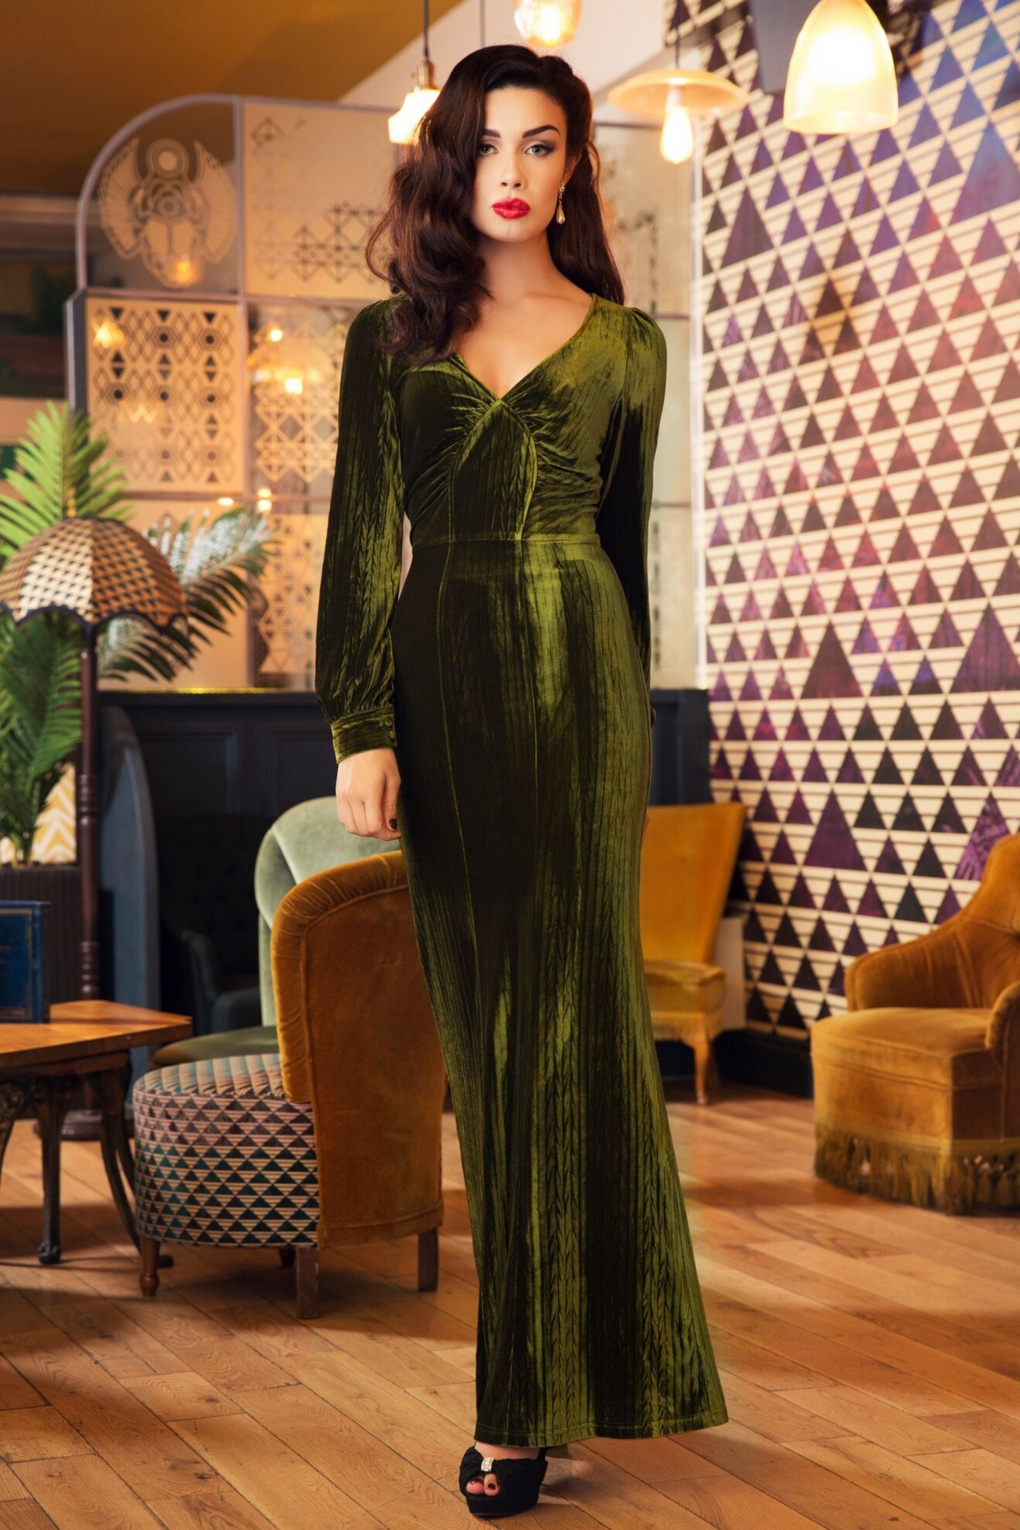 Vintage Evening Dresses and Formal Evening Gowns 30s Olivia Velvet Maxi Dress in Olive Green £64.25 AT vintagedancer.com